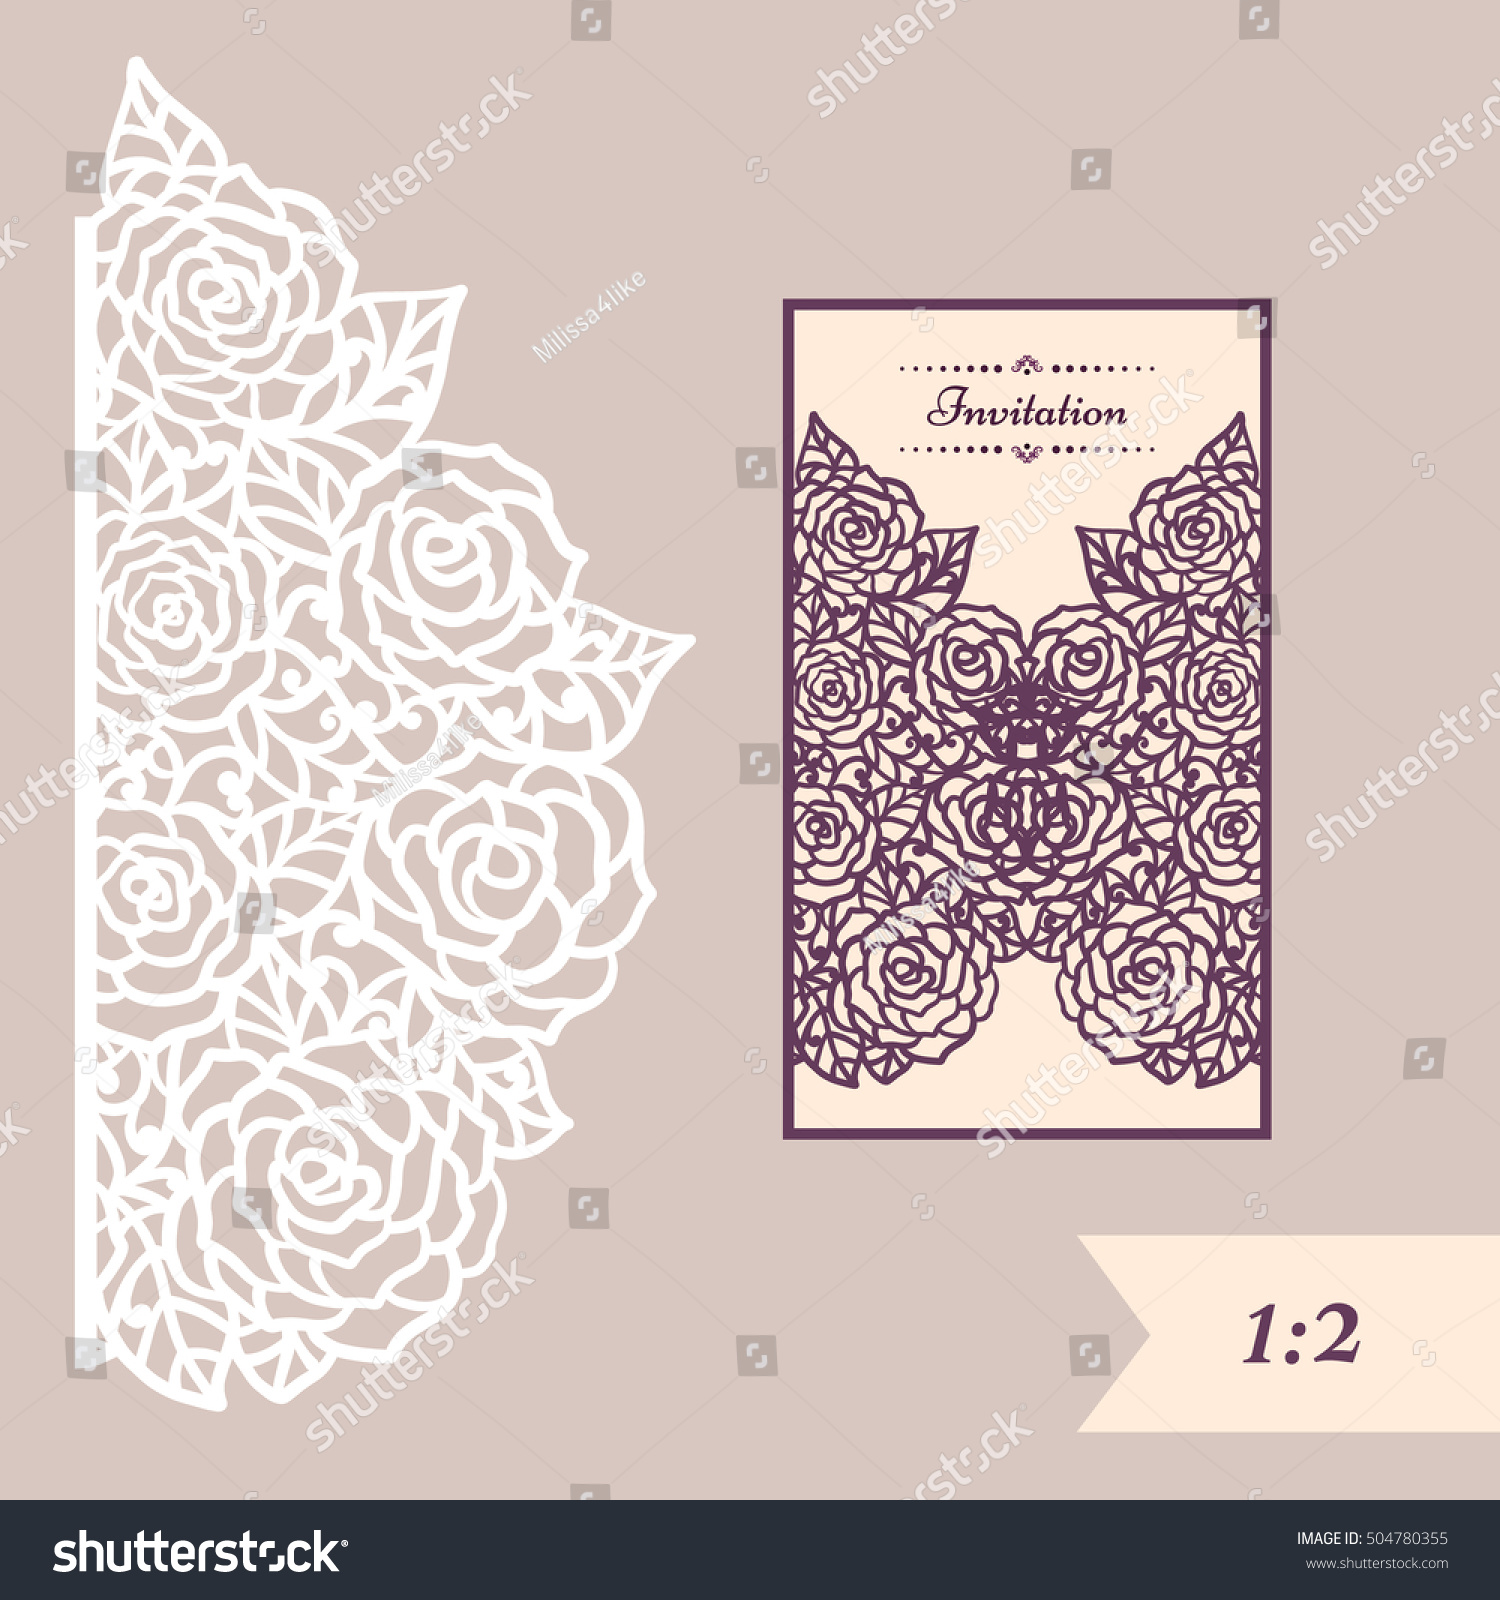 Wedding invitation greeting card abstract ornament stock vector hd wedding invitation or greeting card with abstract ornament vector envelope template for laser cutting stopboris Image collections